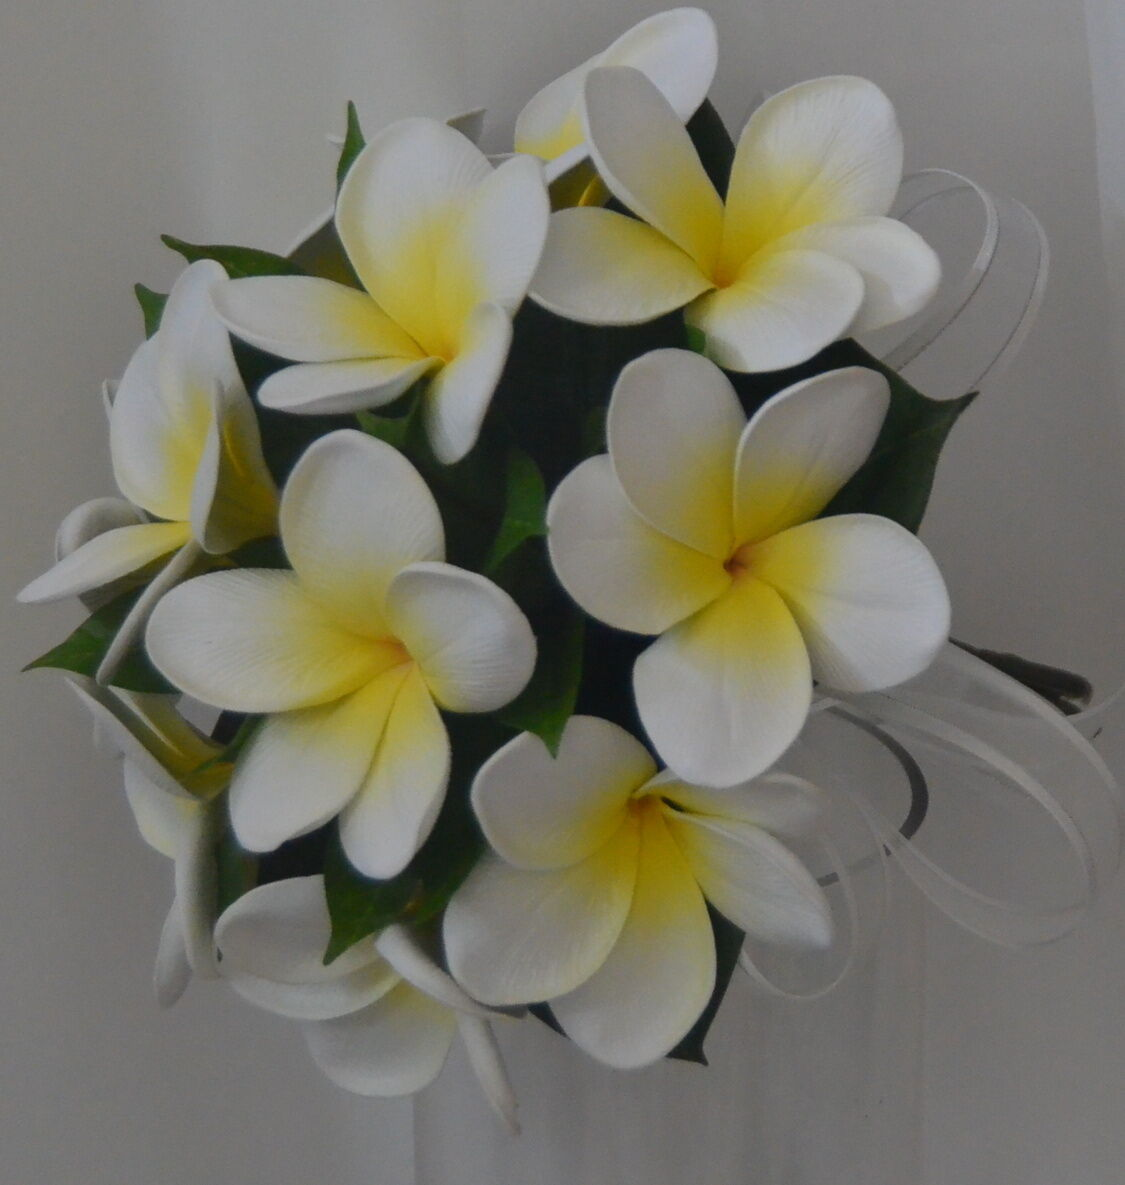 SILK WEDDING BOUQUET LATEX FRANGIPANI blanc jaune FLOWERS POSY FLOWER 12PIECES